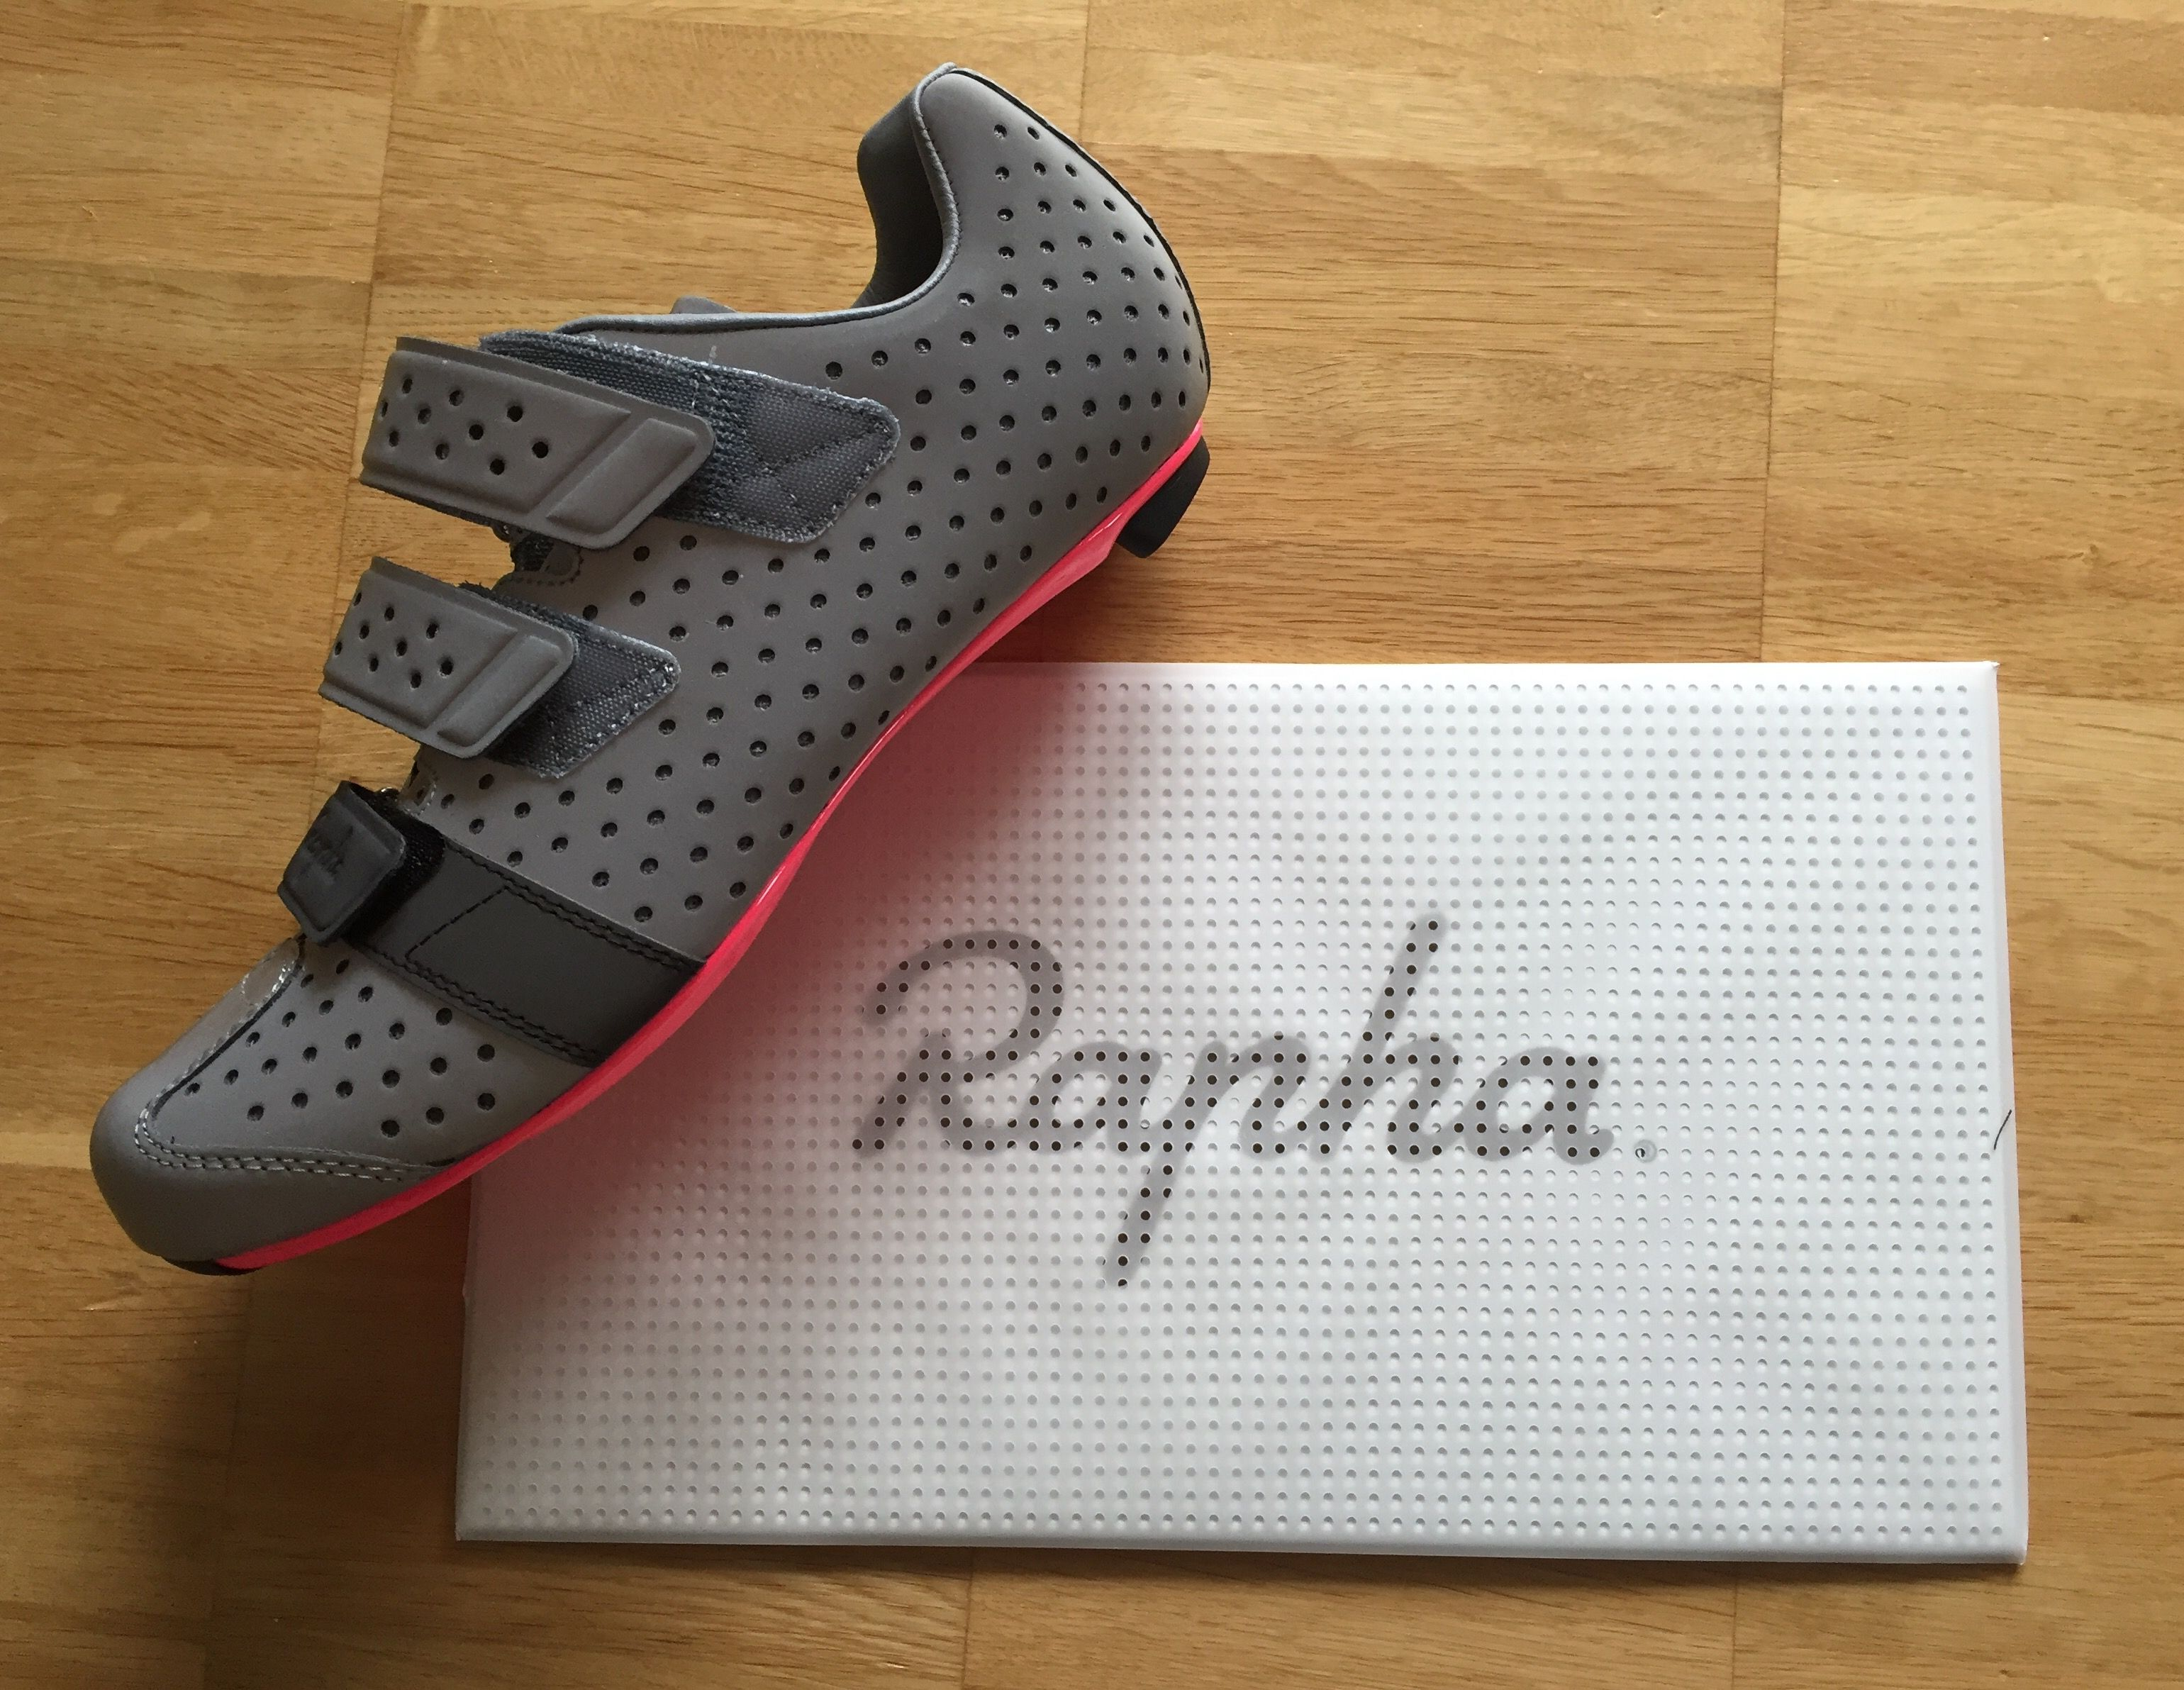 Shoes Climbers Rapha Shoes Rapha Climbers RccBike RccBike Climbers Shoes ShoesCycling Rapha ShoesCycling rBxedCo